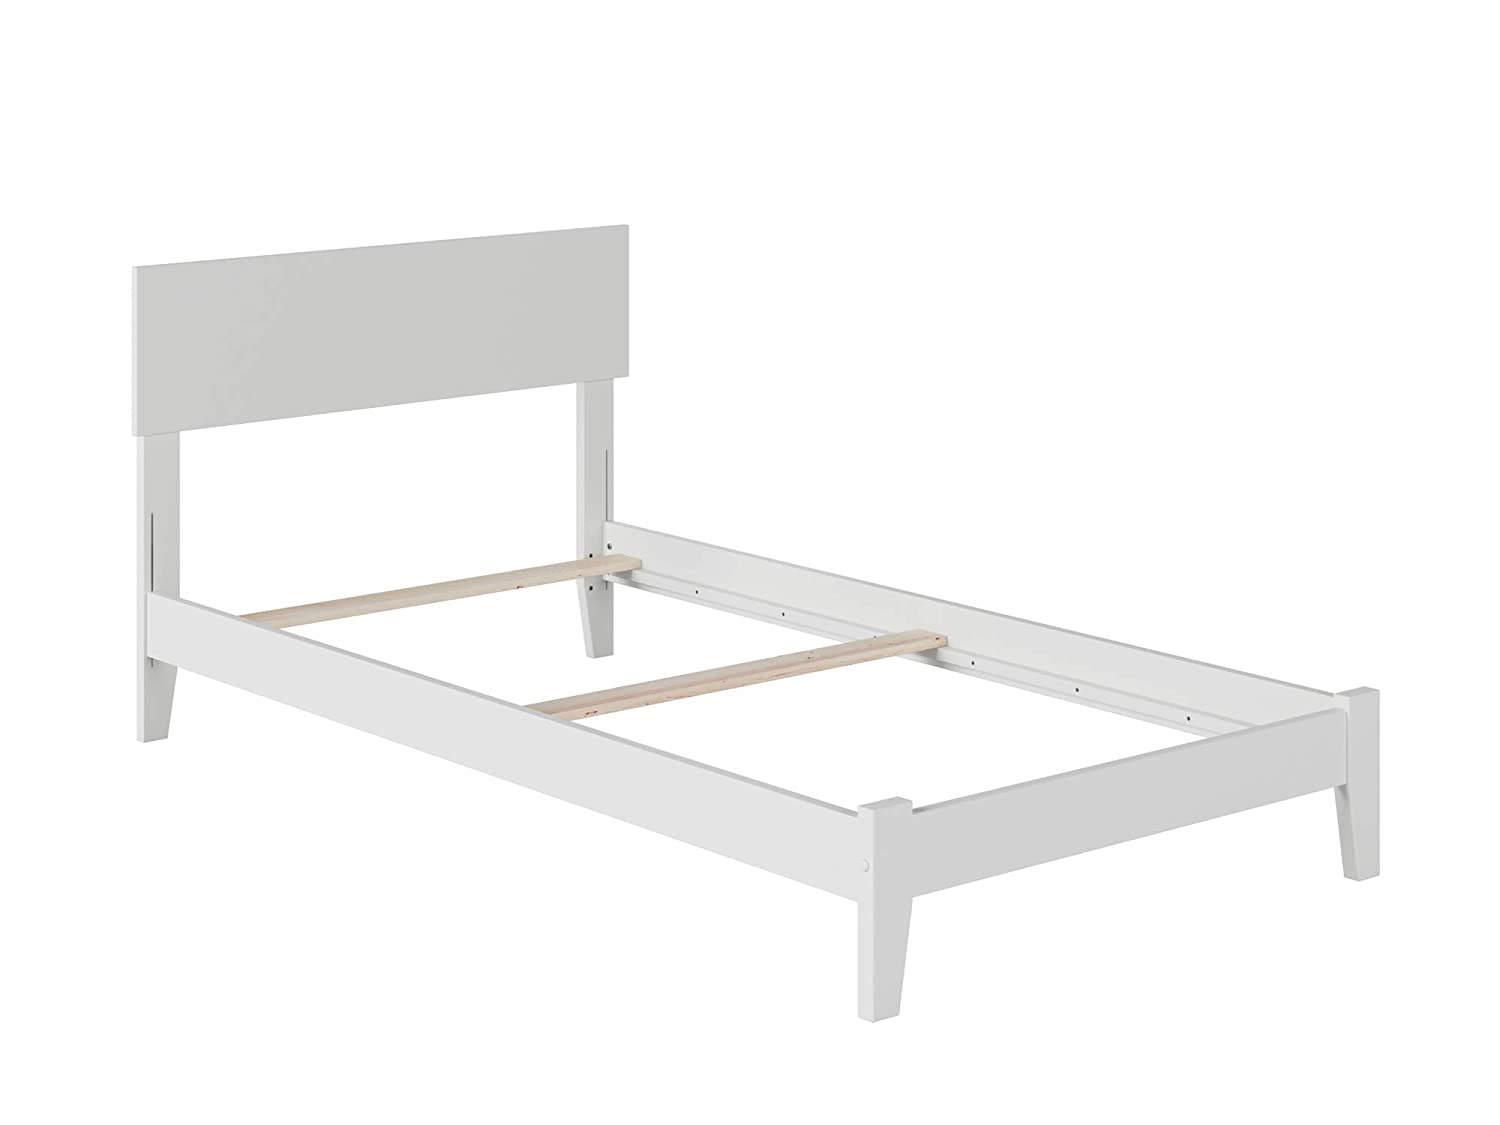 Atlantic Furniture Orlando Traditional Bed, Twin XL, White